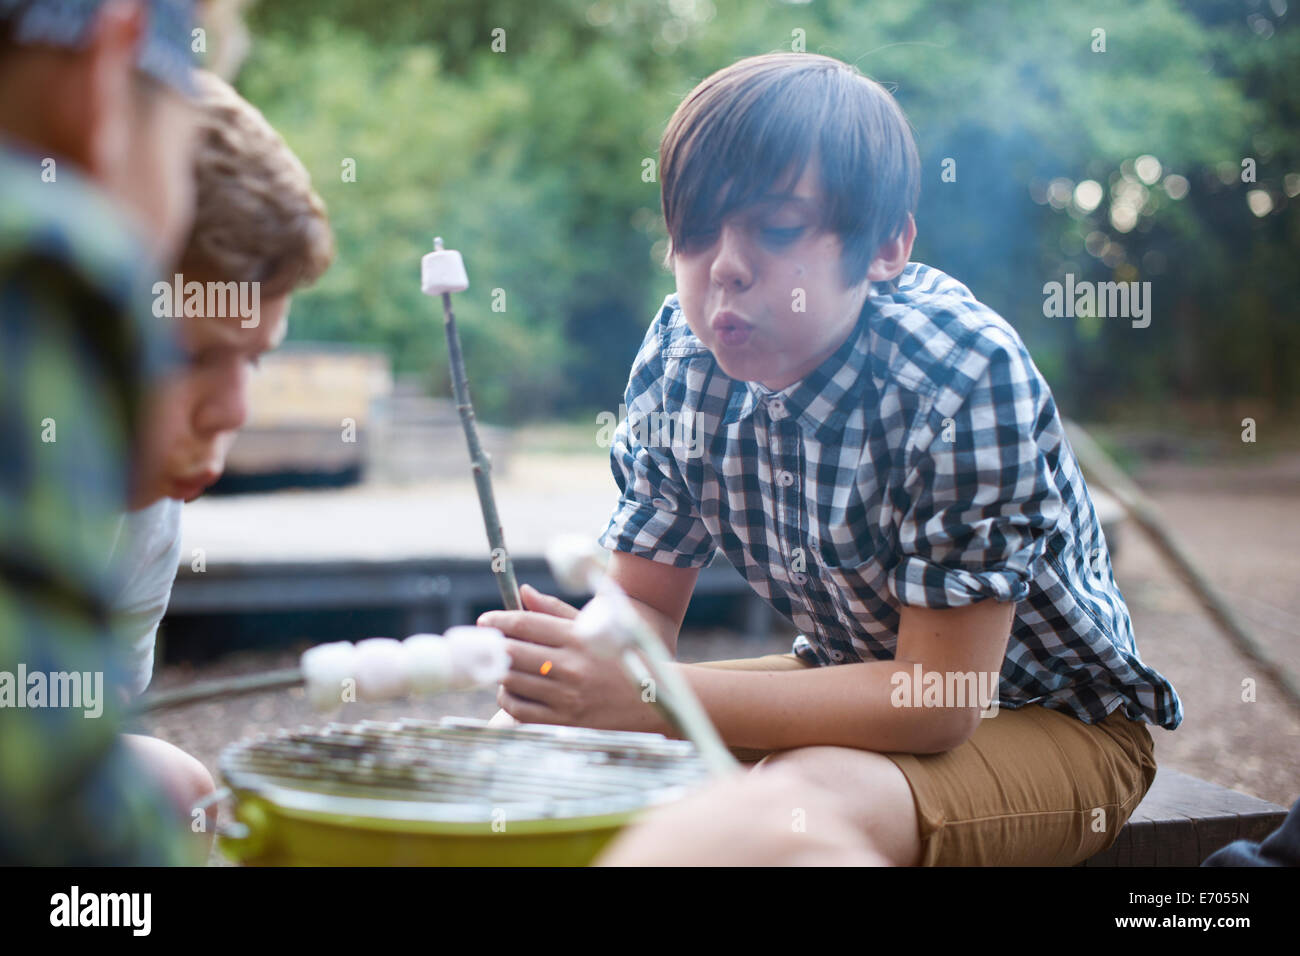 Group of young boys toasting marshmallows over bucket barbecue - Stock Image